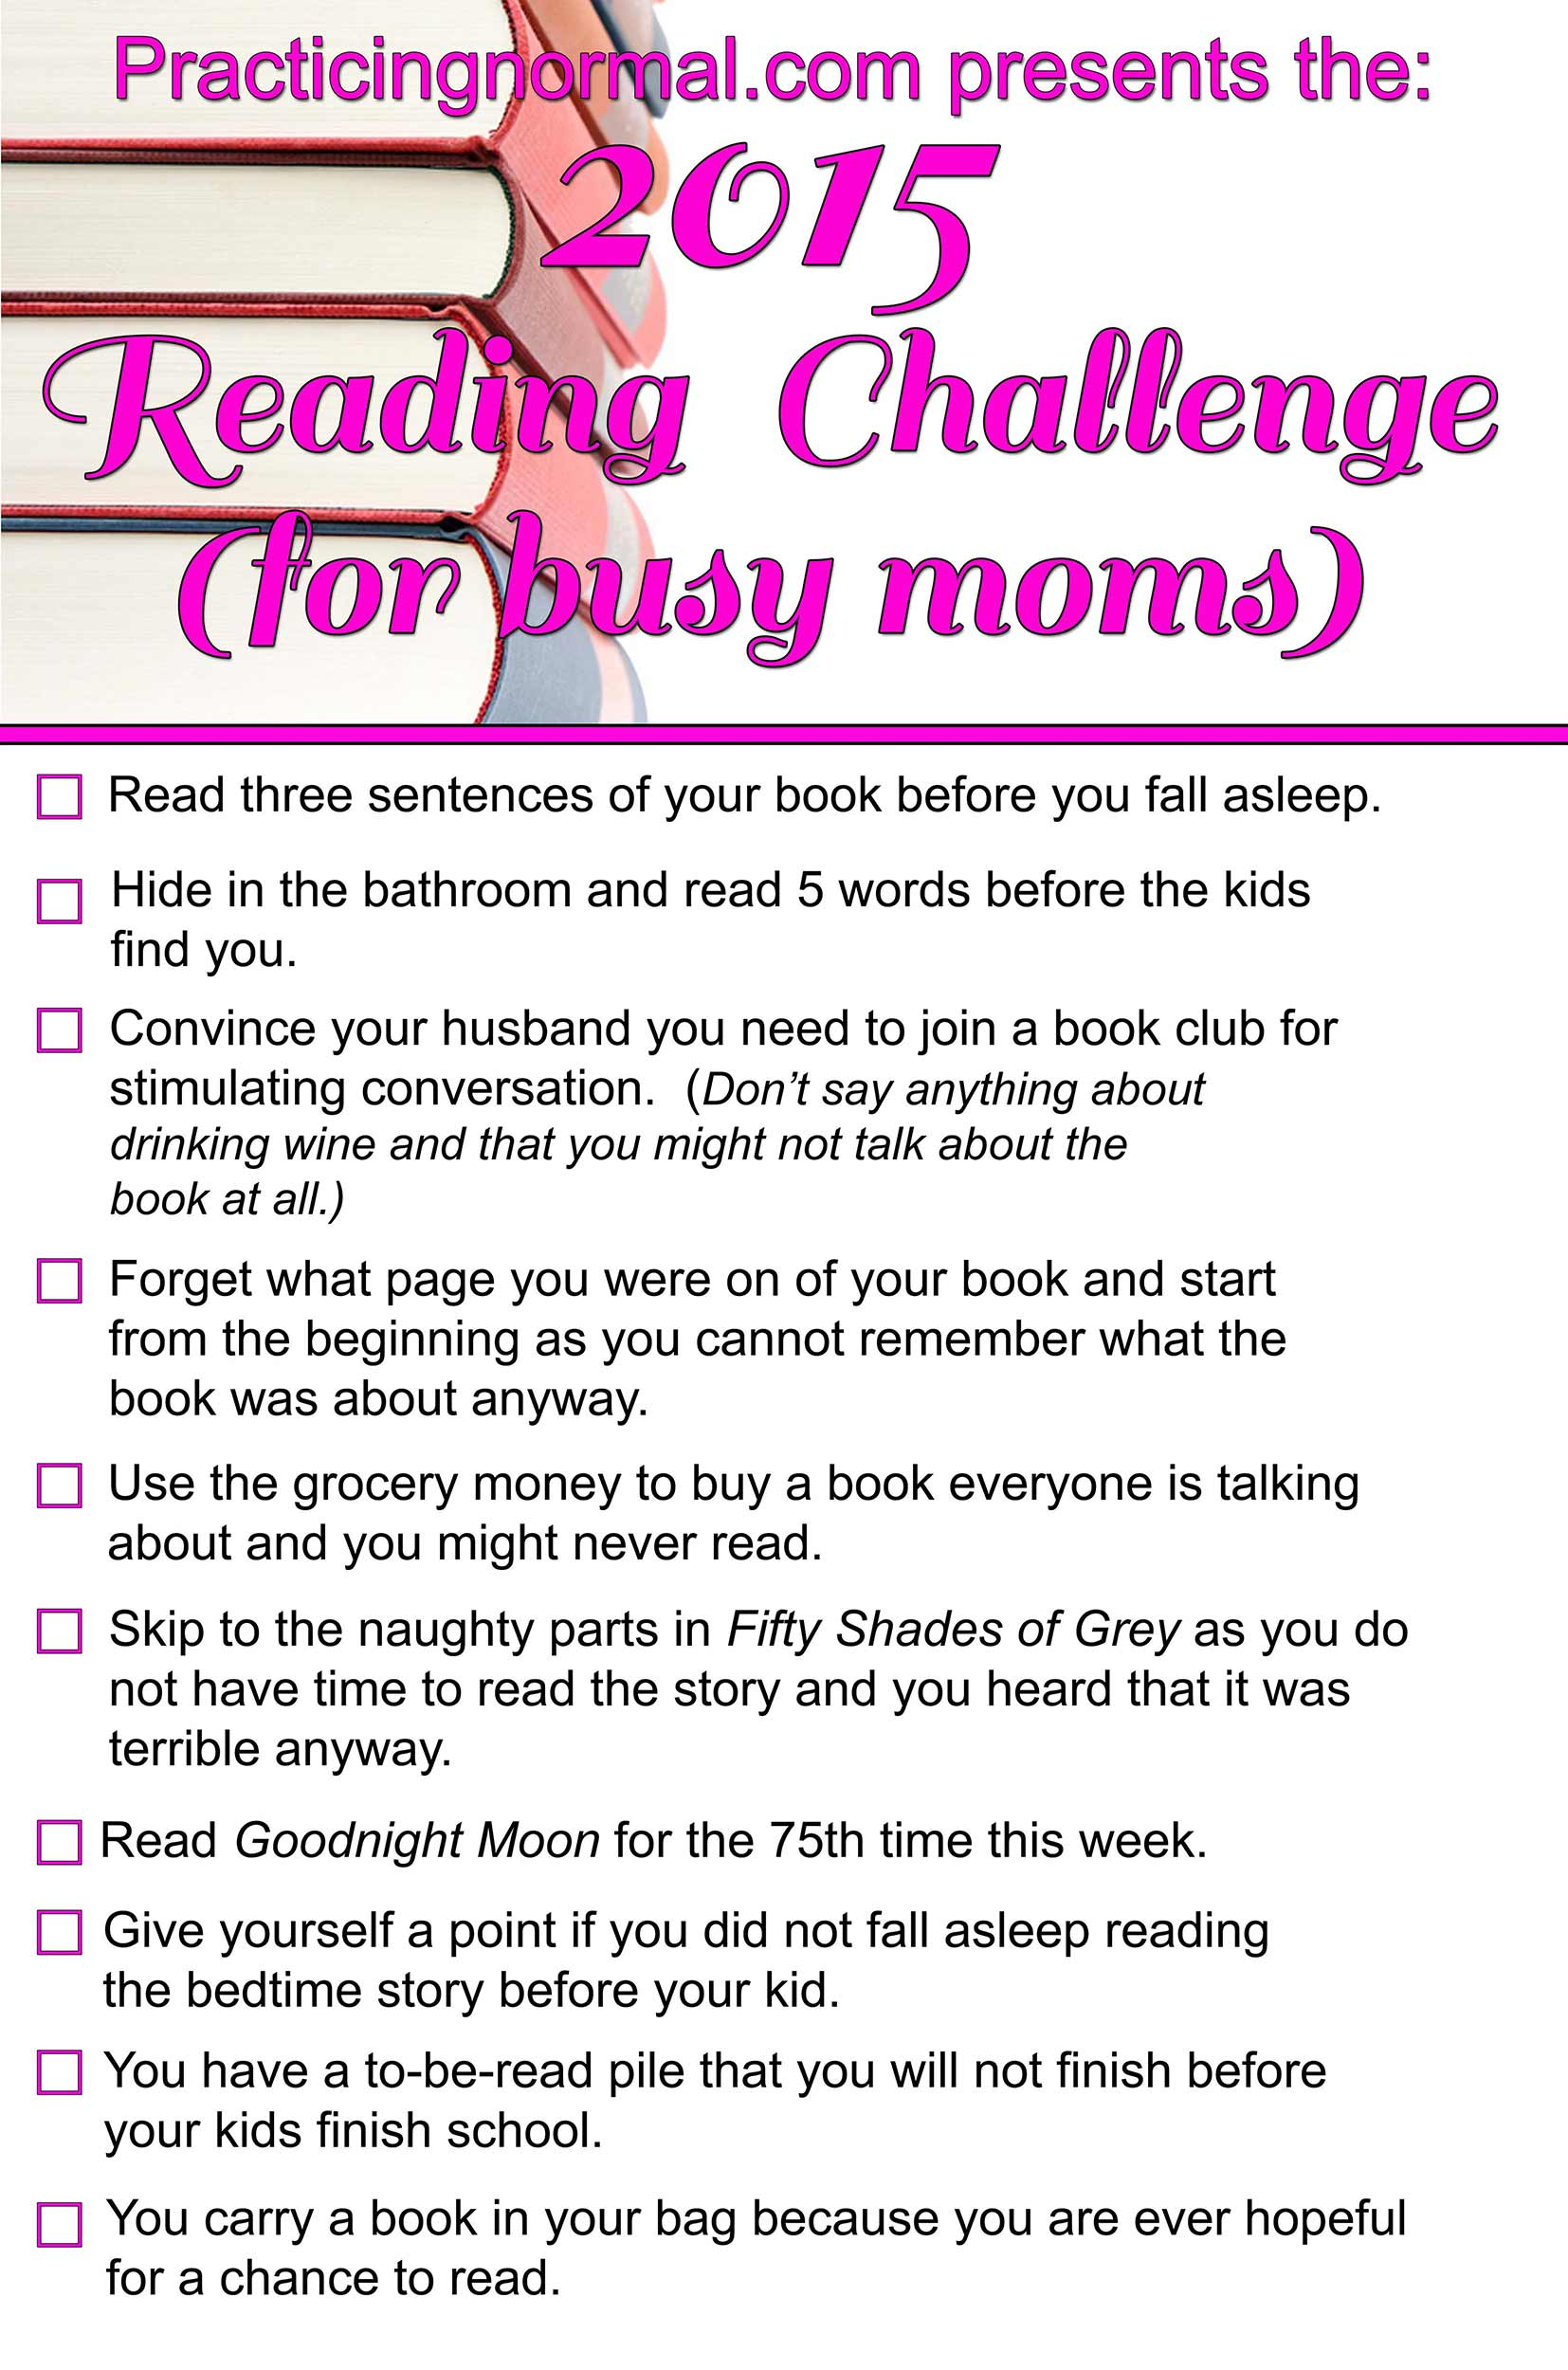 Reading Challenge for busy moms